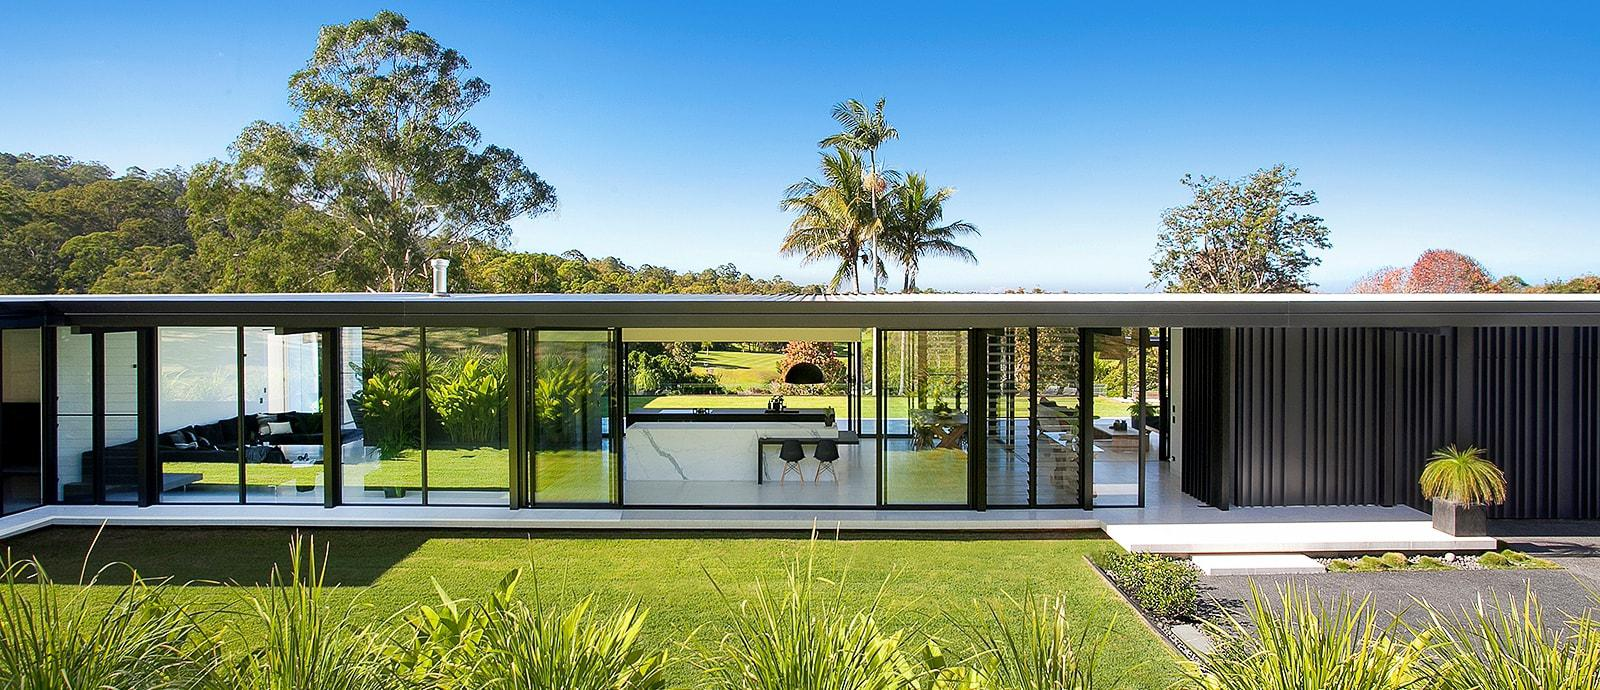 Sarah_Waller_Design_Hero_1_Doonan_Glasshouse_Long_glass_view_image_1600_1-min